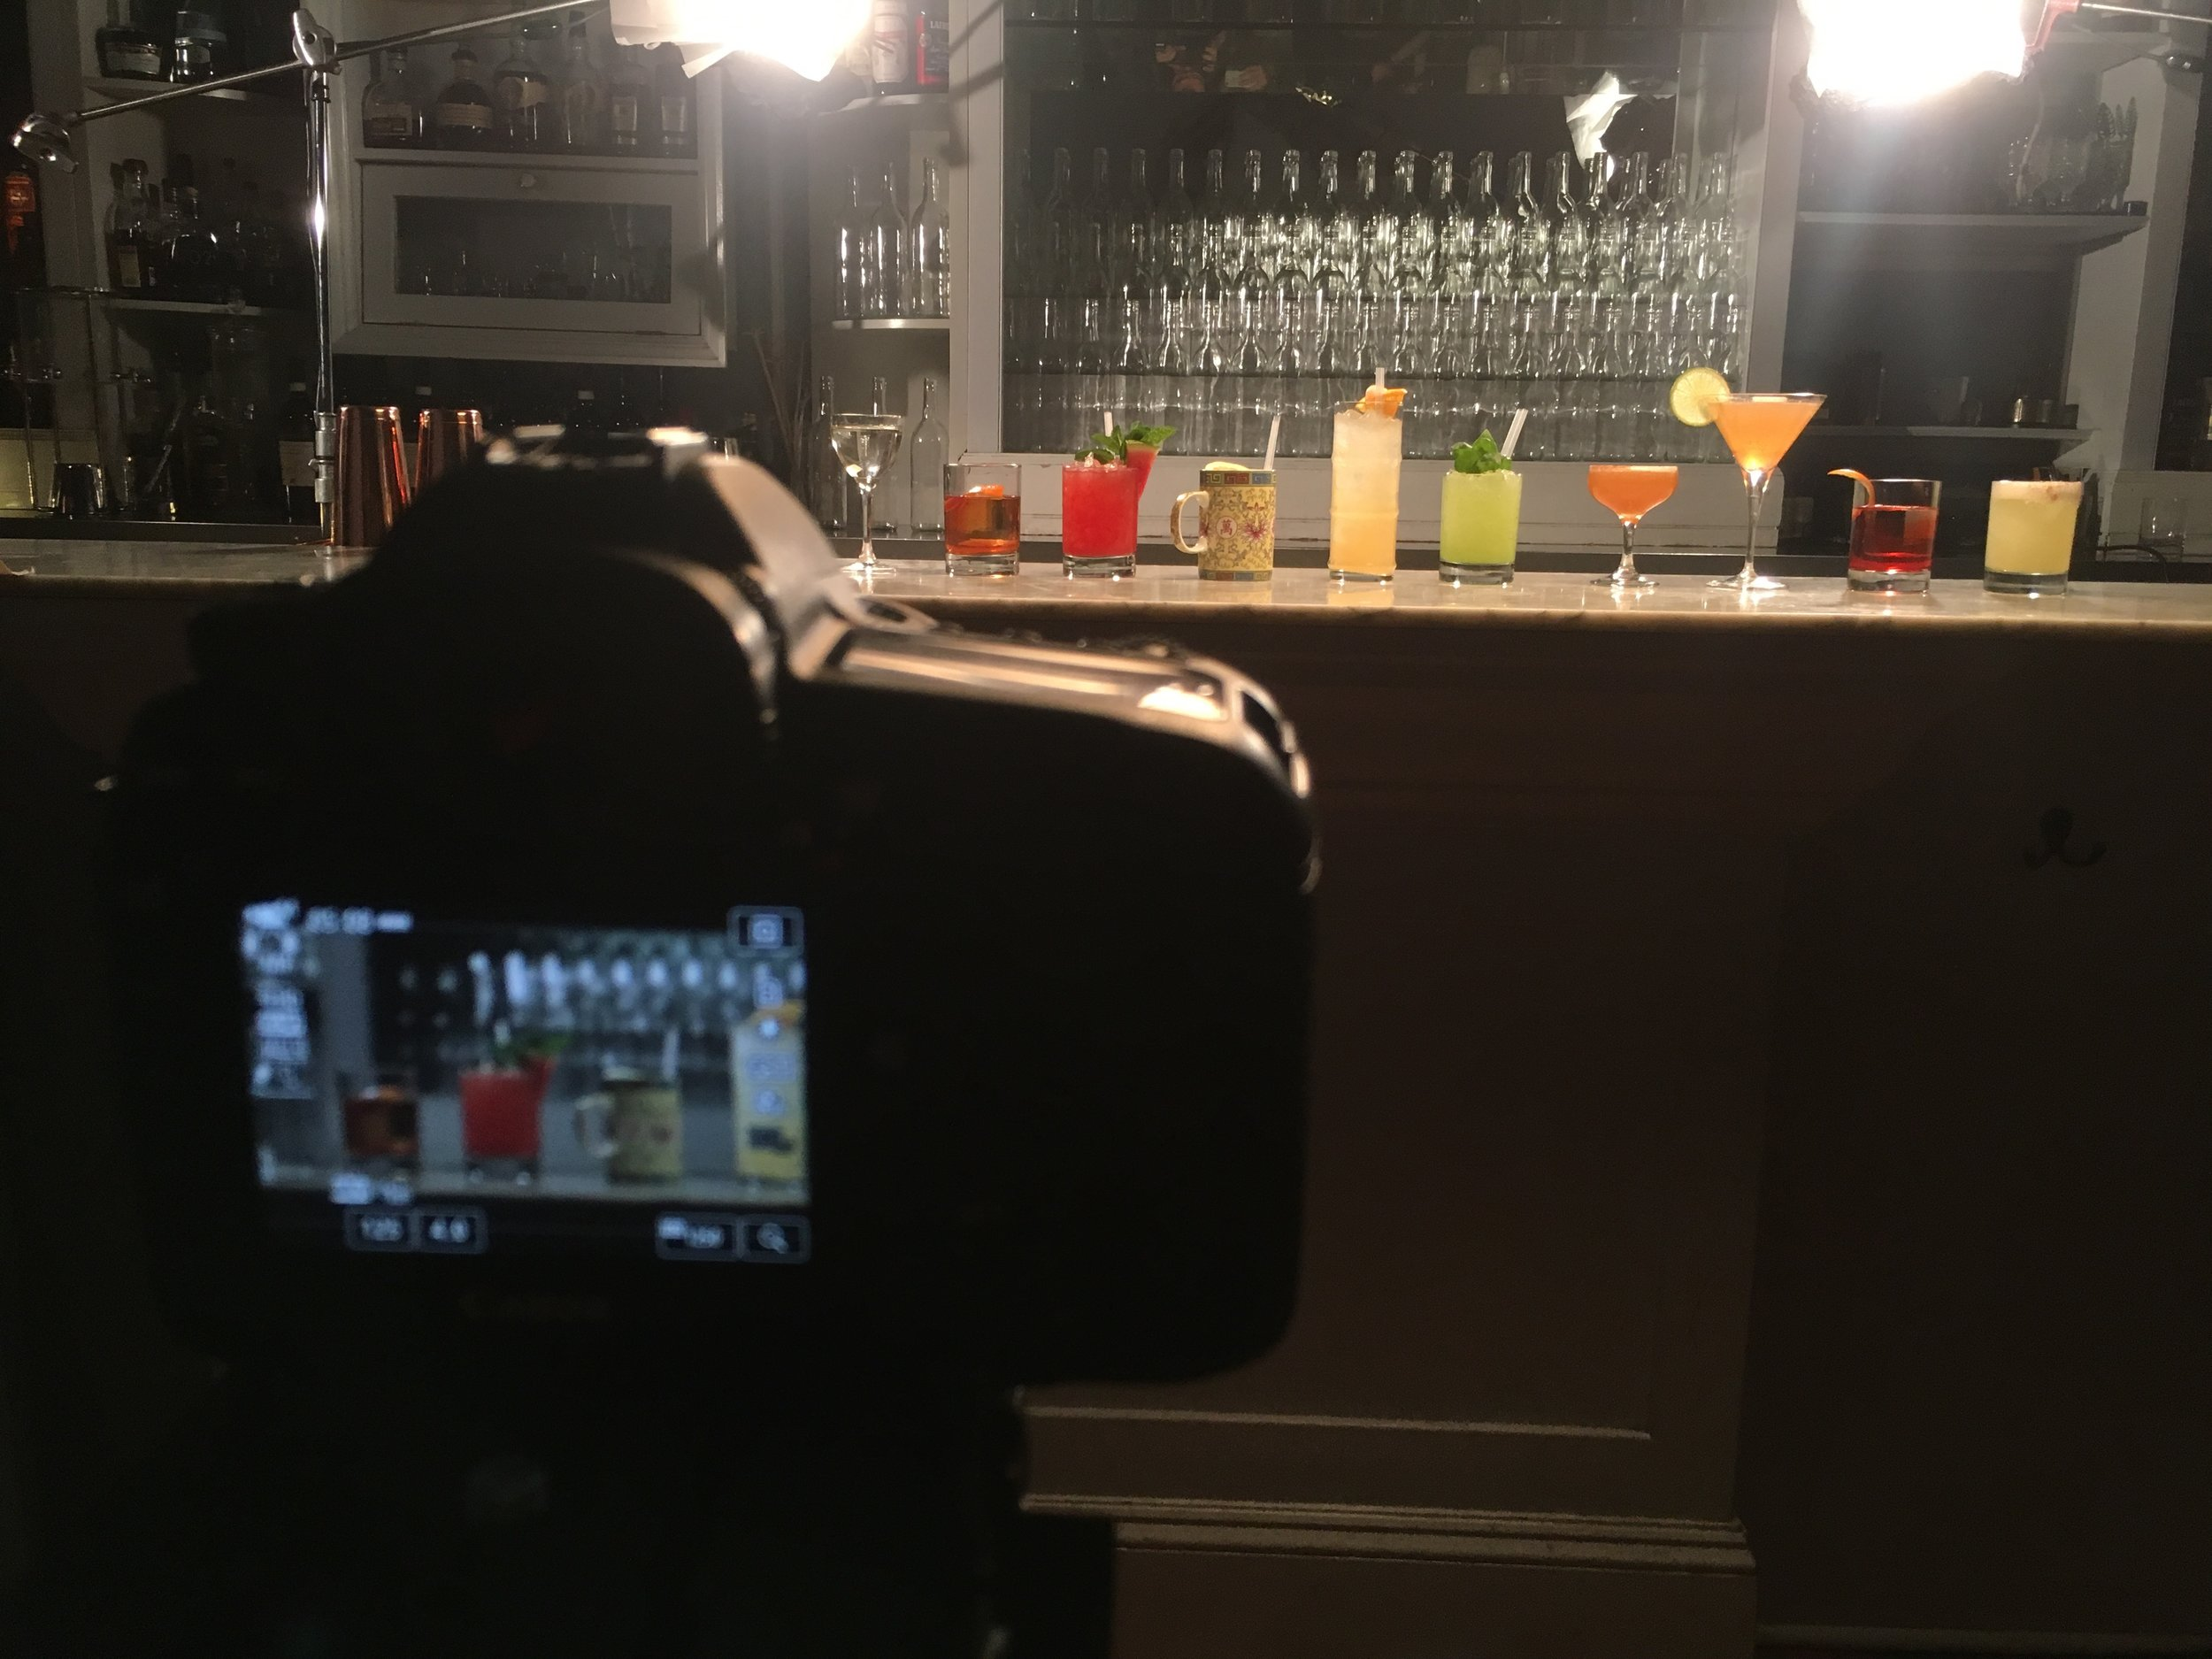 Sometimes it is filming a cheese burger, sometimes a person, and sometimes its hand crafted cocktails made by the world renowned bartender, Angus Winchester. The Intercontinental Hotel brought on RCK to this three day production at the Violet Hour with the talented DP Mark Barry.